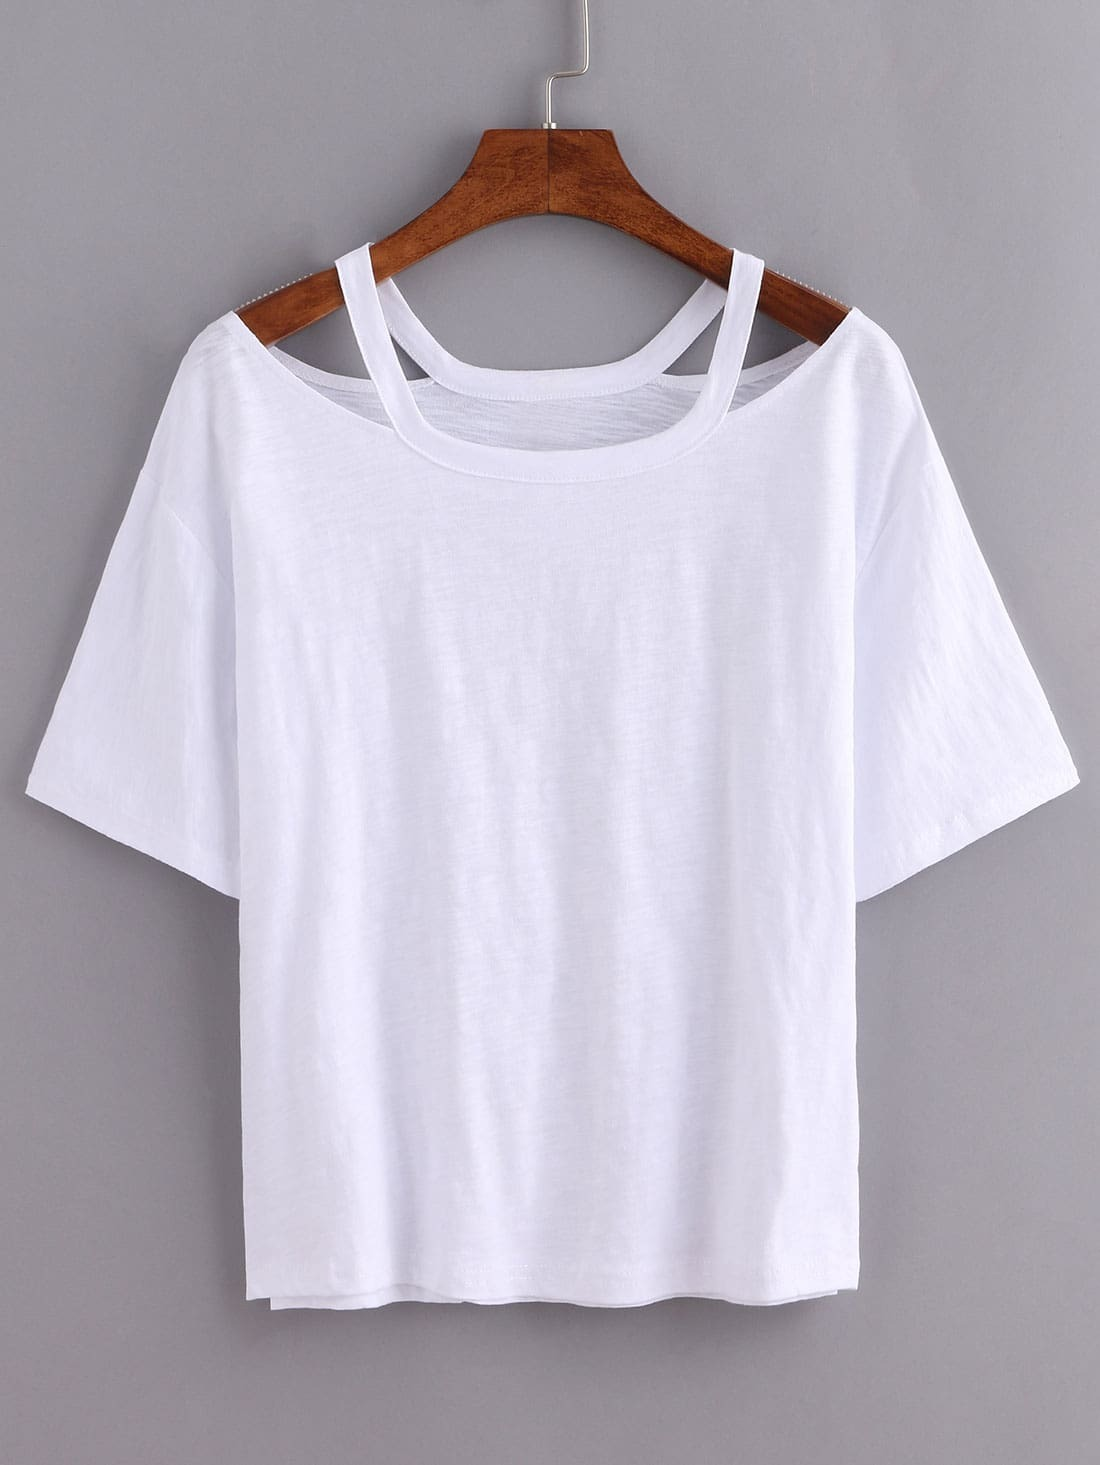 Cutout loose fit white t shirt emmacloth women fast for Who makes the best white t shirts